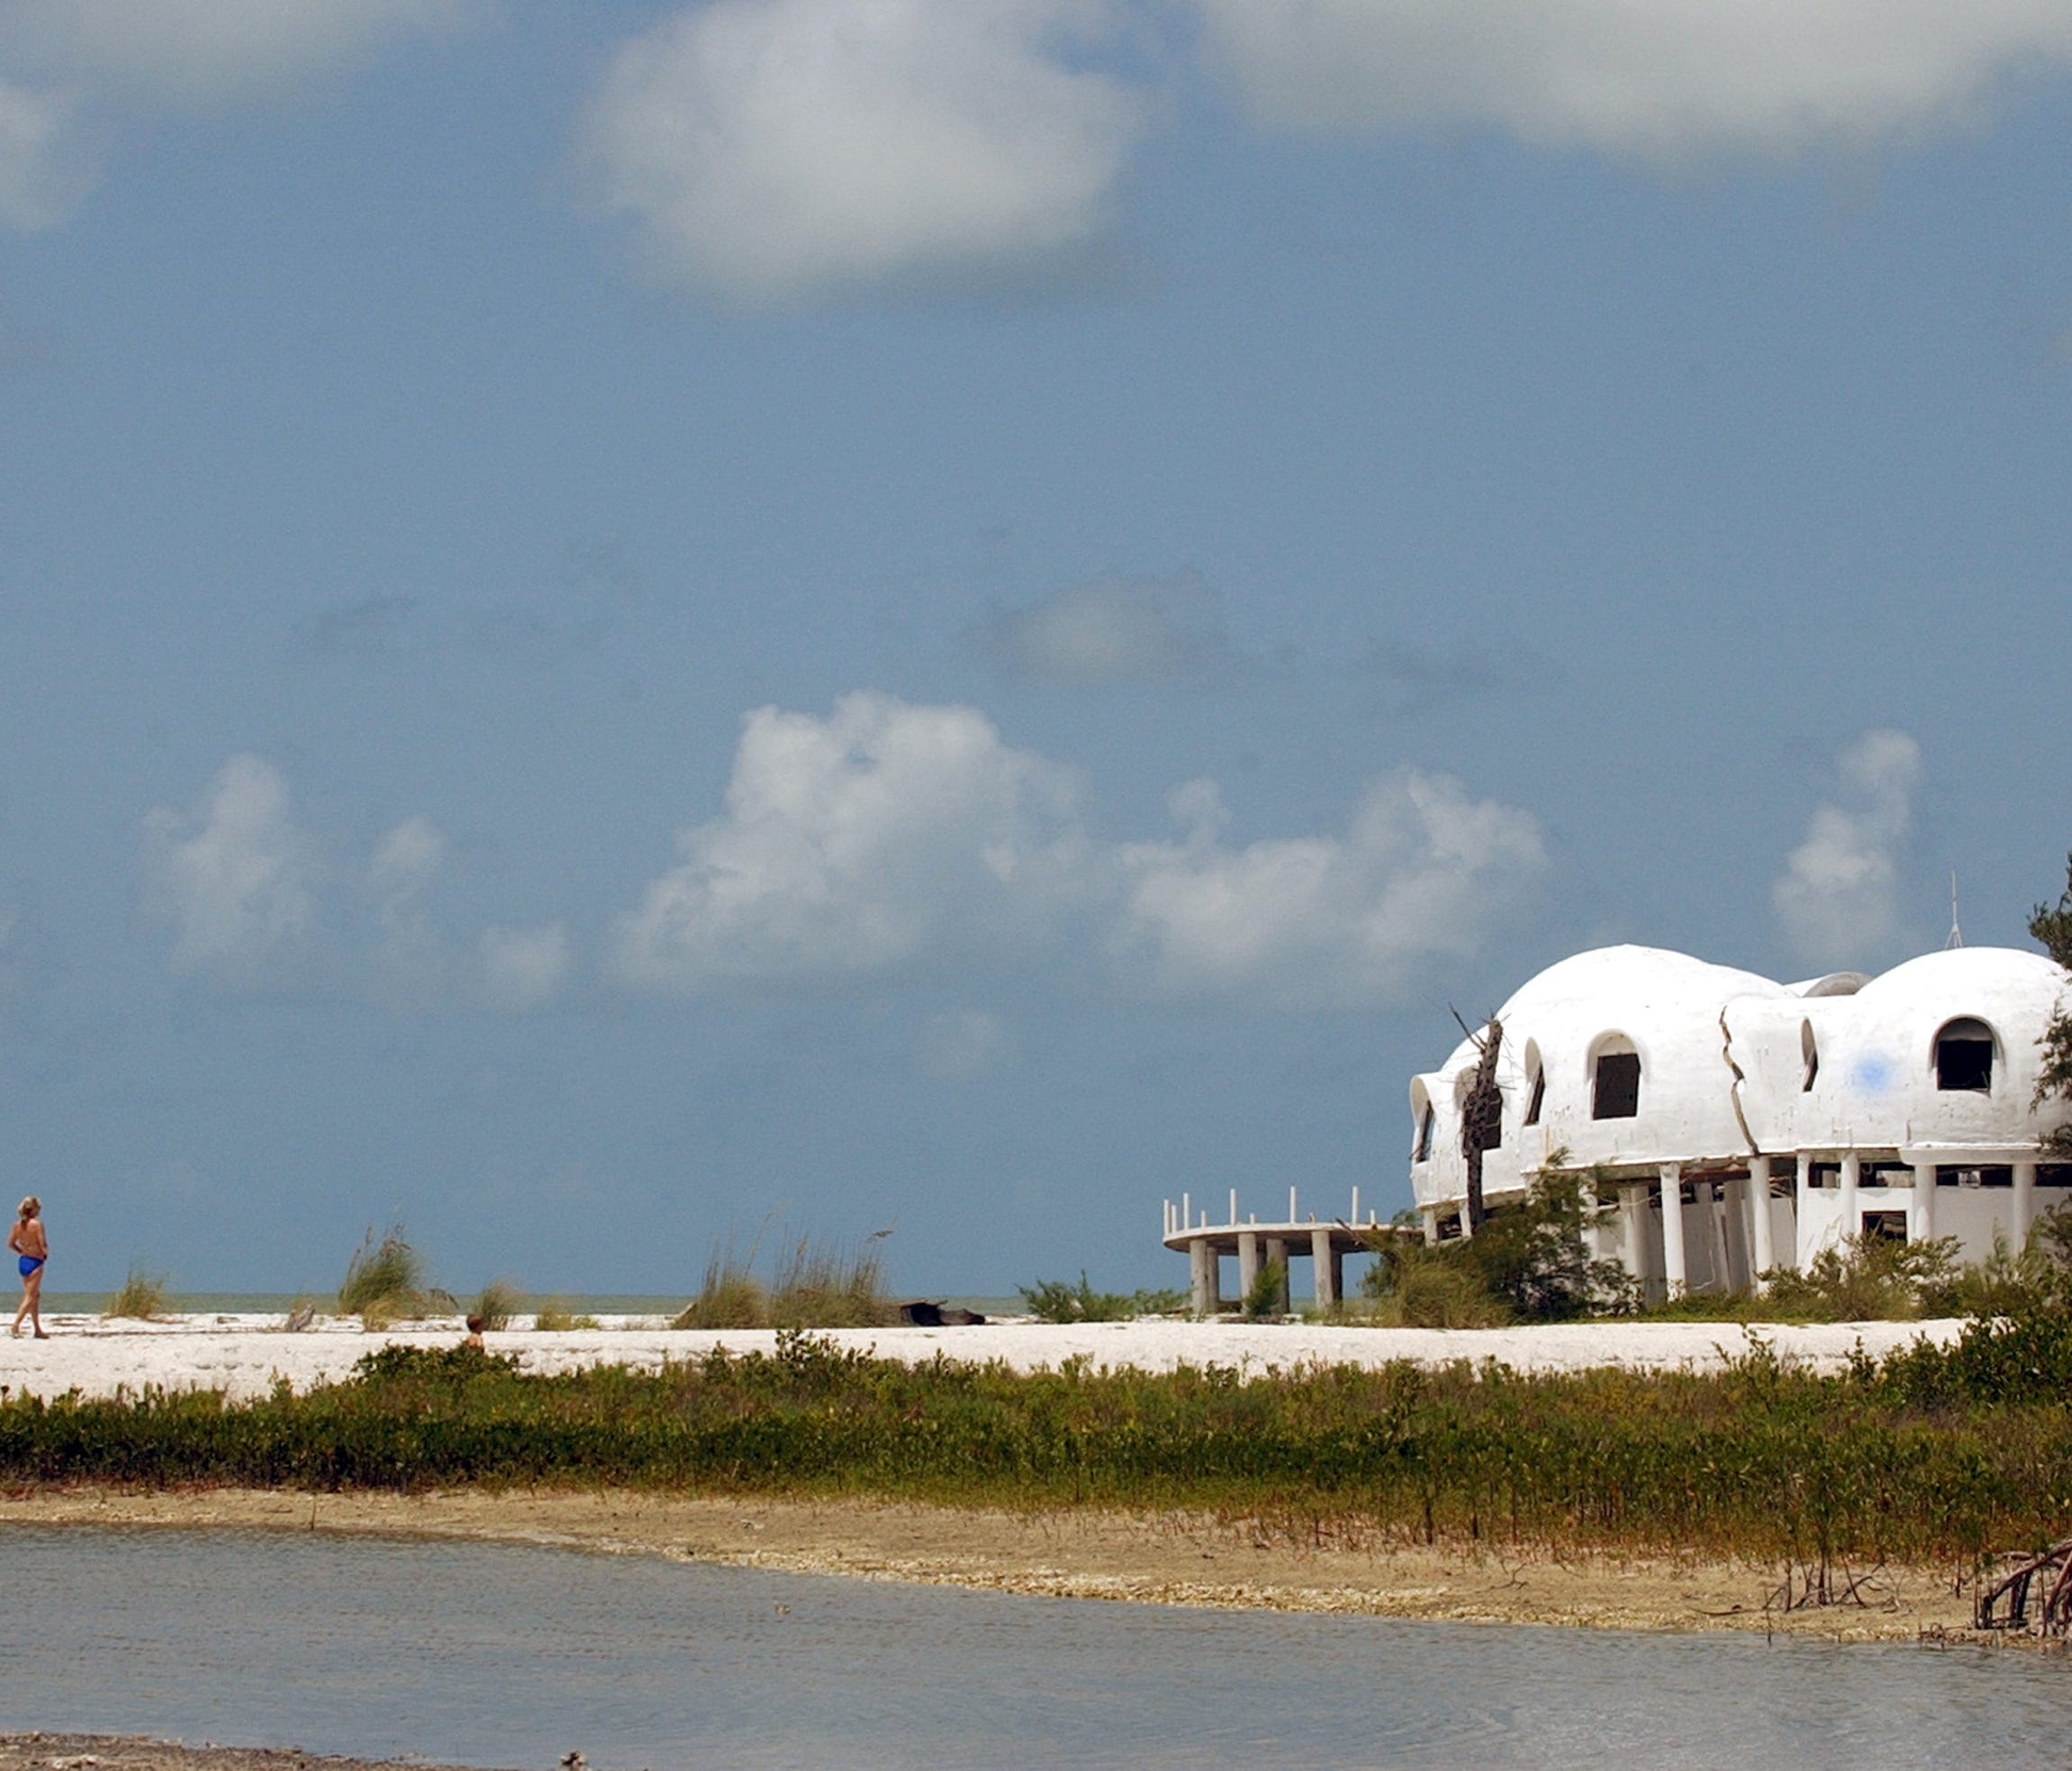 Dome Home Florida: These Otherworldly Domes Used To Be A Beach Home